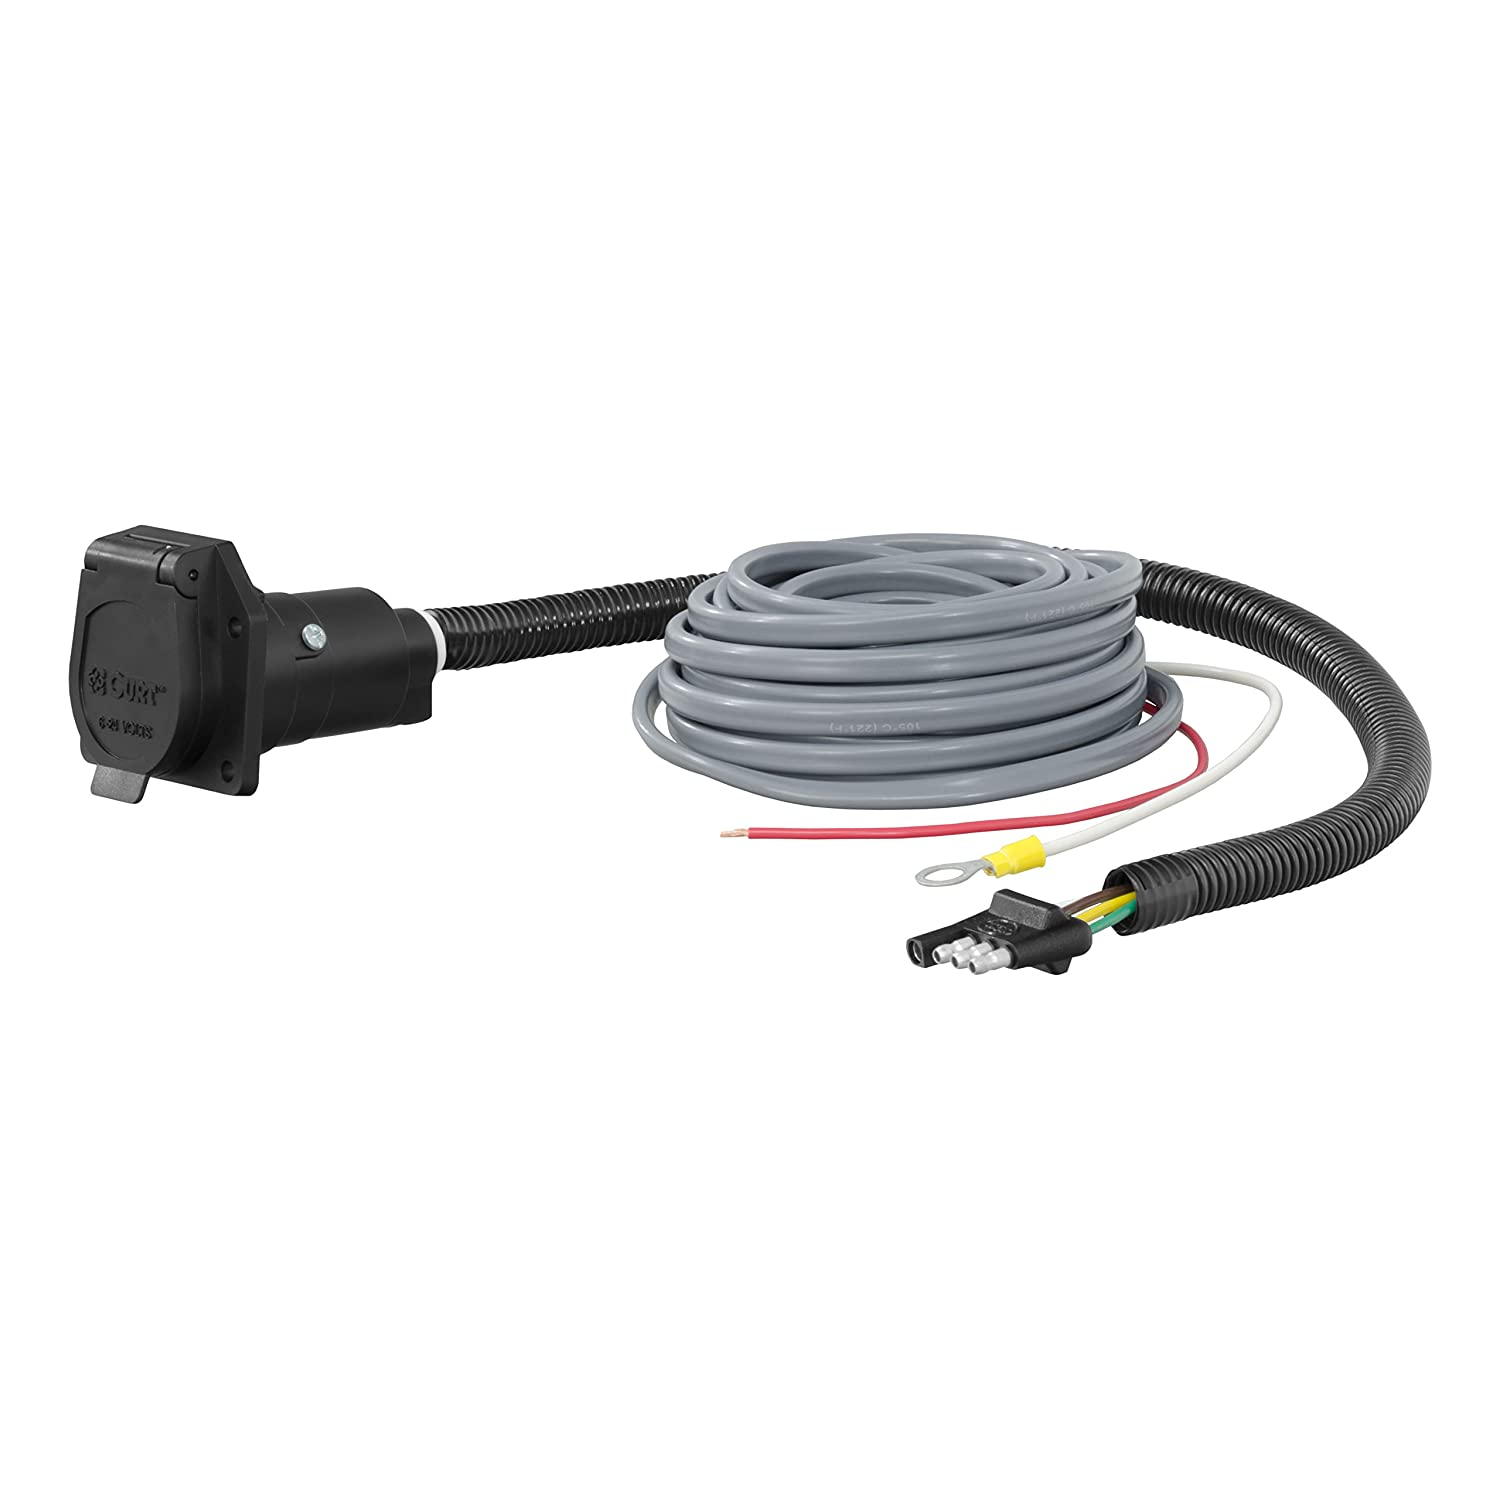 Amazon.com: CURT 57186 4-Way Flat Electrical Adapter with Brake Control  Wiring: Automotive